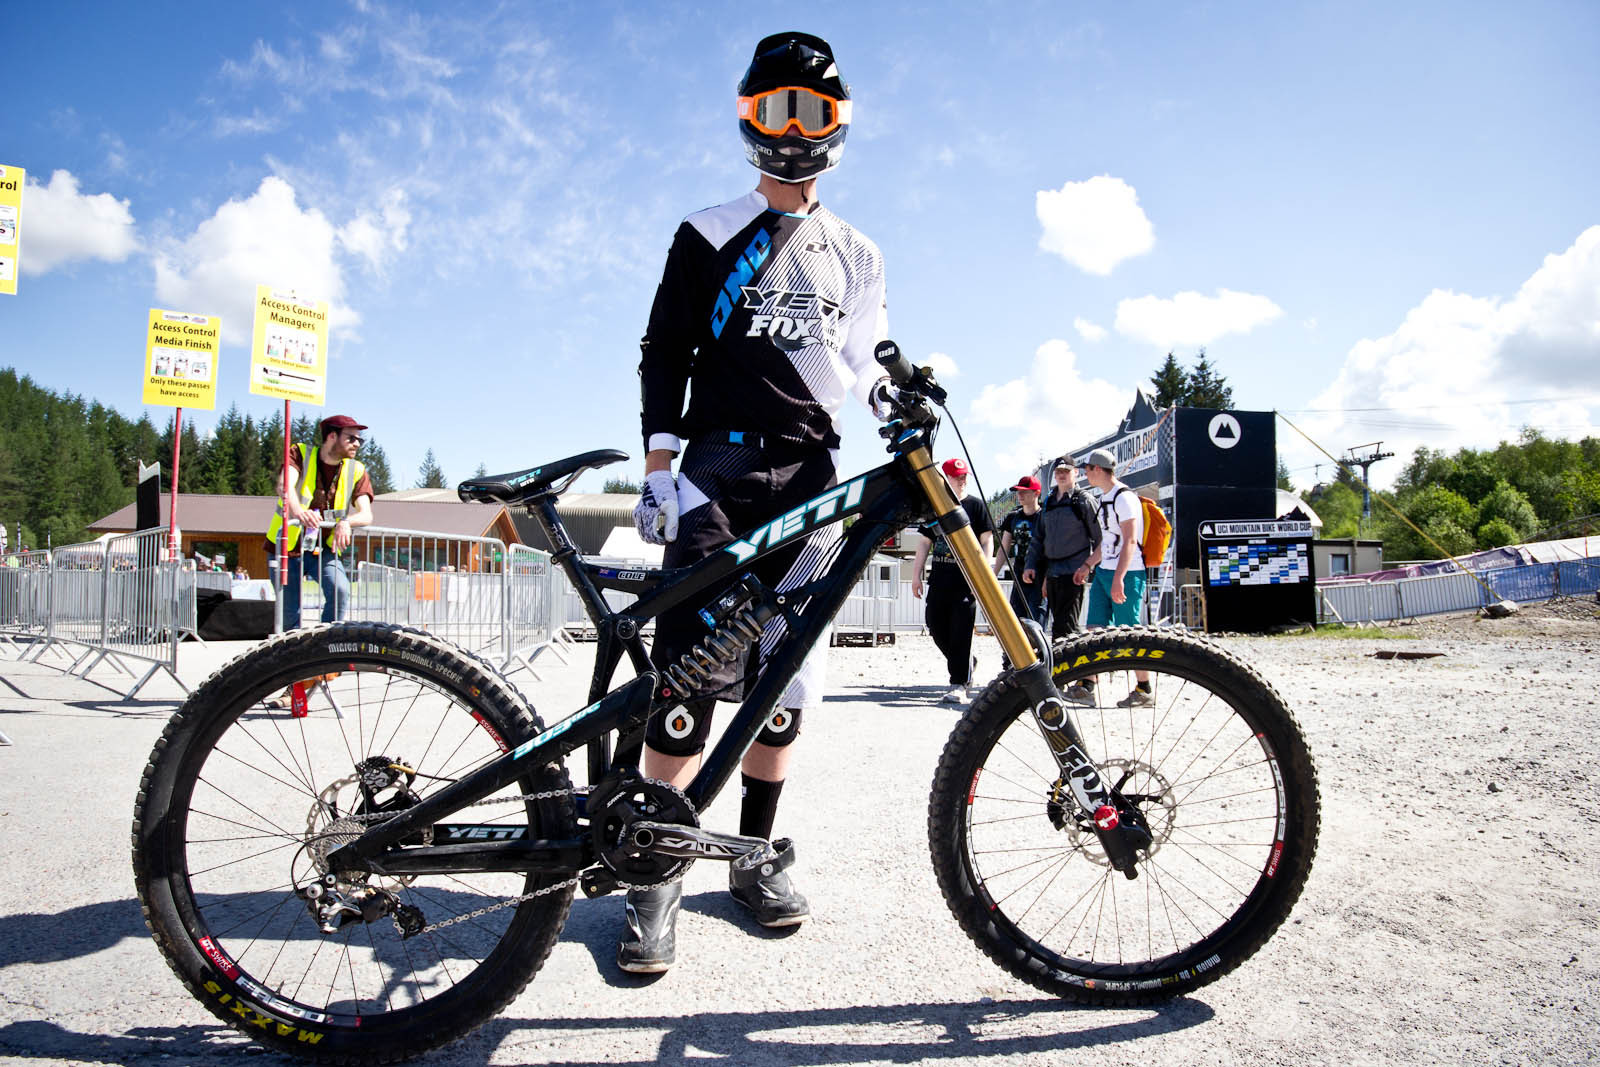 Cam Cole's Yeti 303WC - 24 Pro DH BIkes from Fort William World Cup - Mountain Biking Pictures - Vital MTB